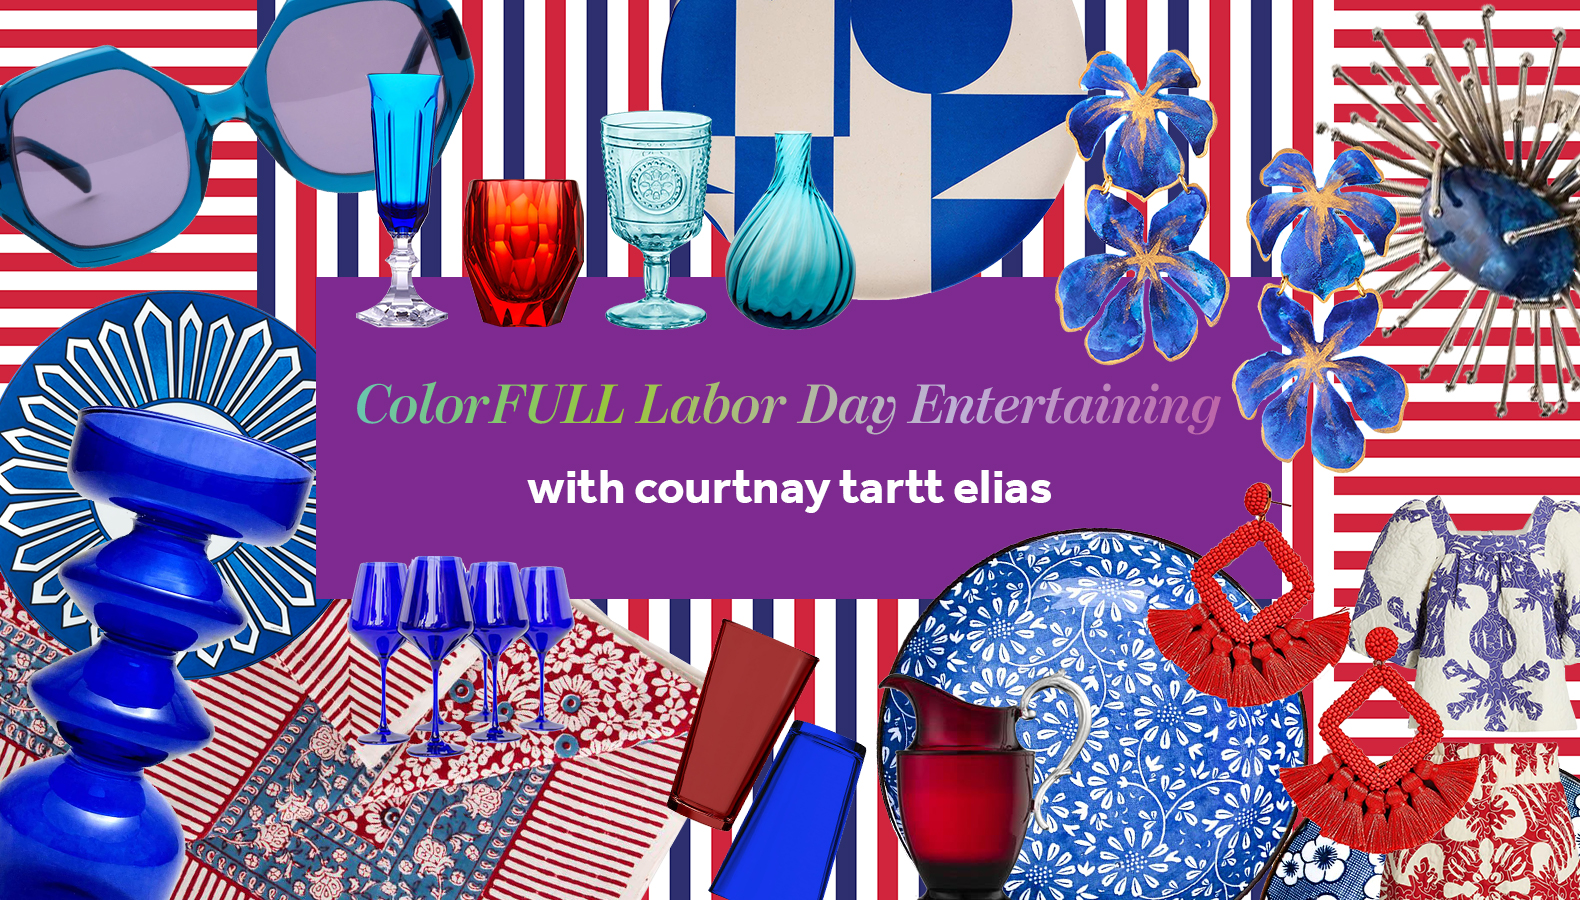 ColorFULL Labor Day Entertaining